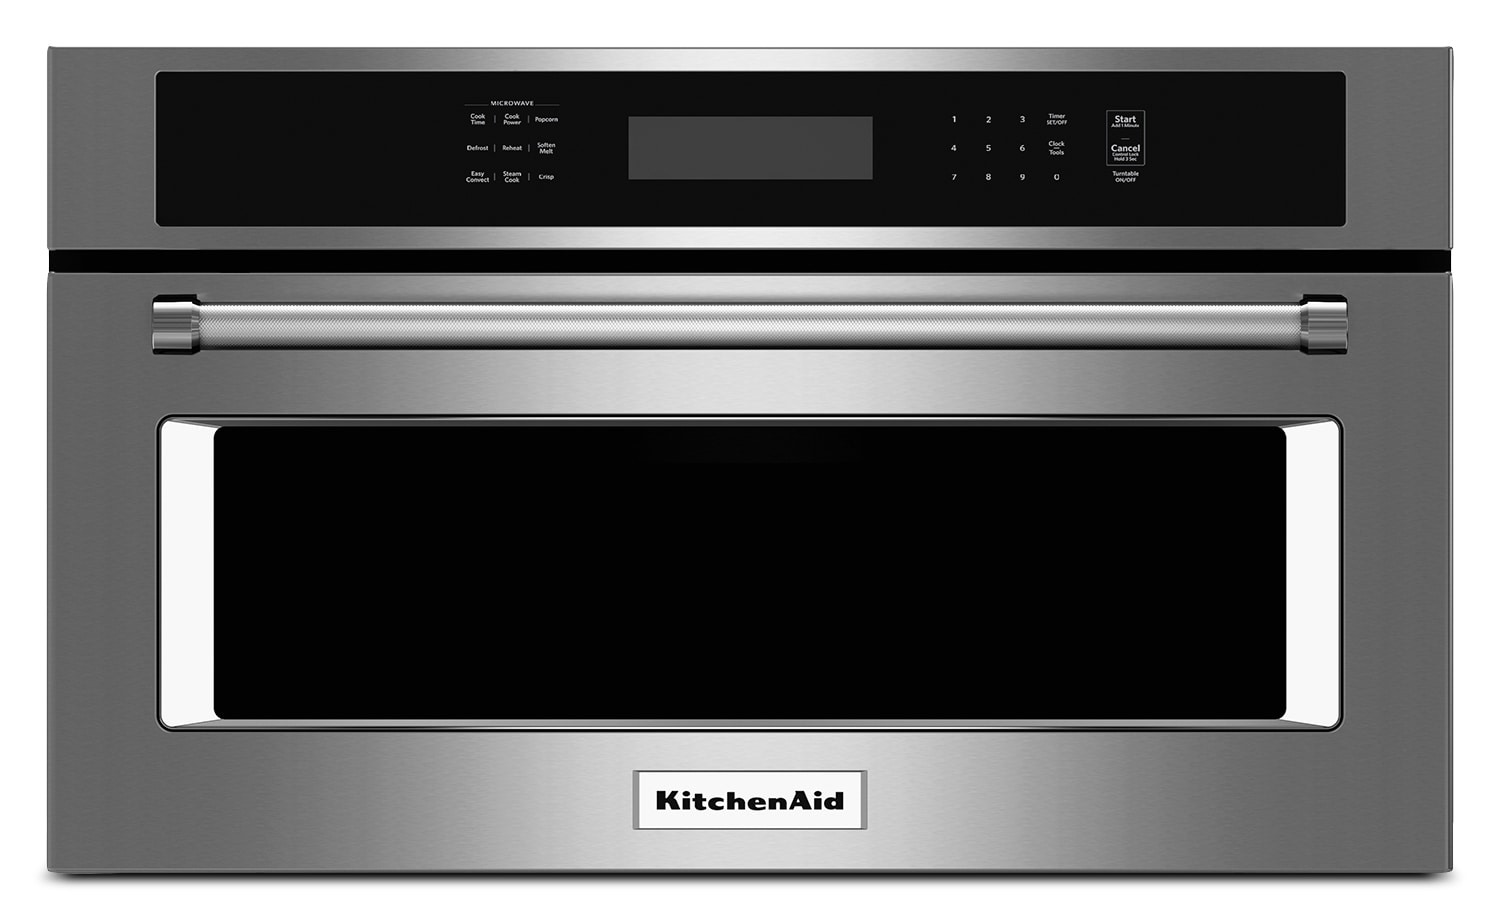 Cooking Products - KitchenAid Stainless Steel Convection Microwave (1.4 Cu. Ft.) - KMBP100ES